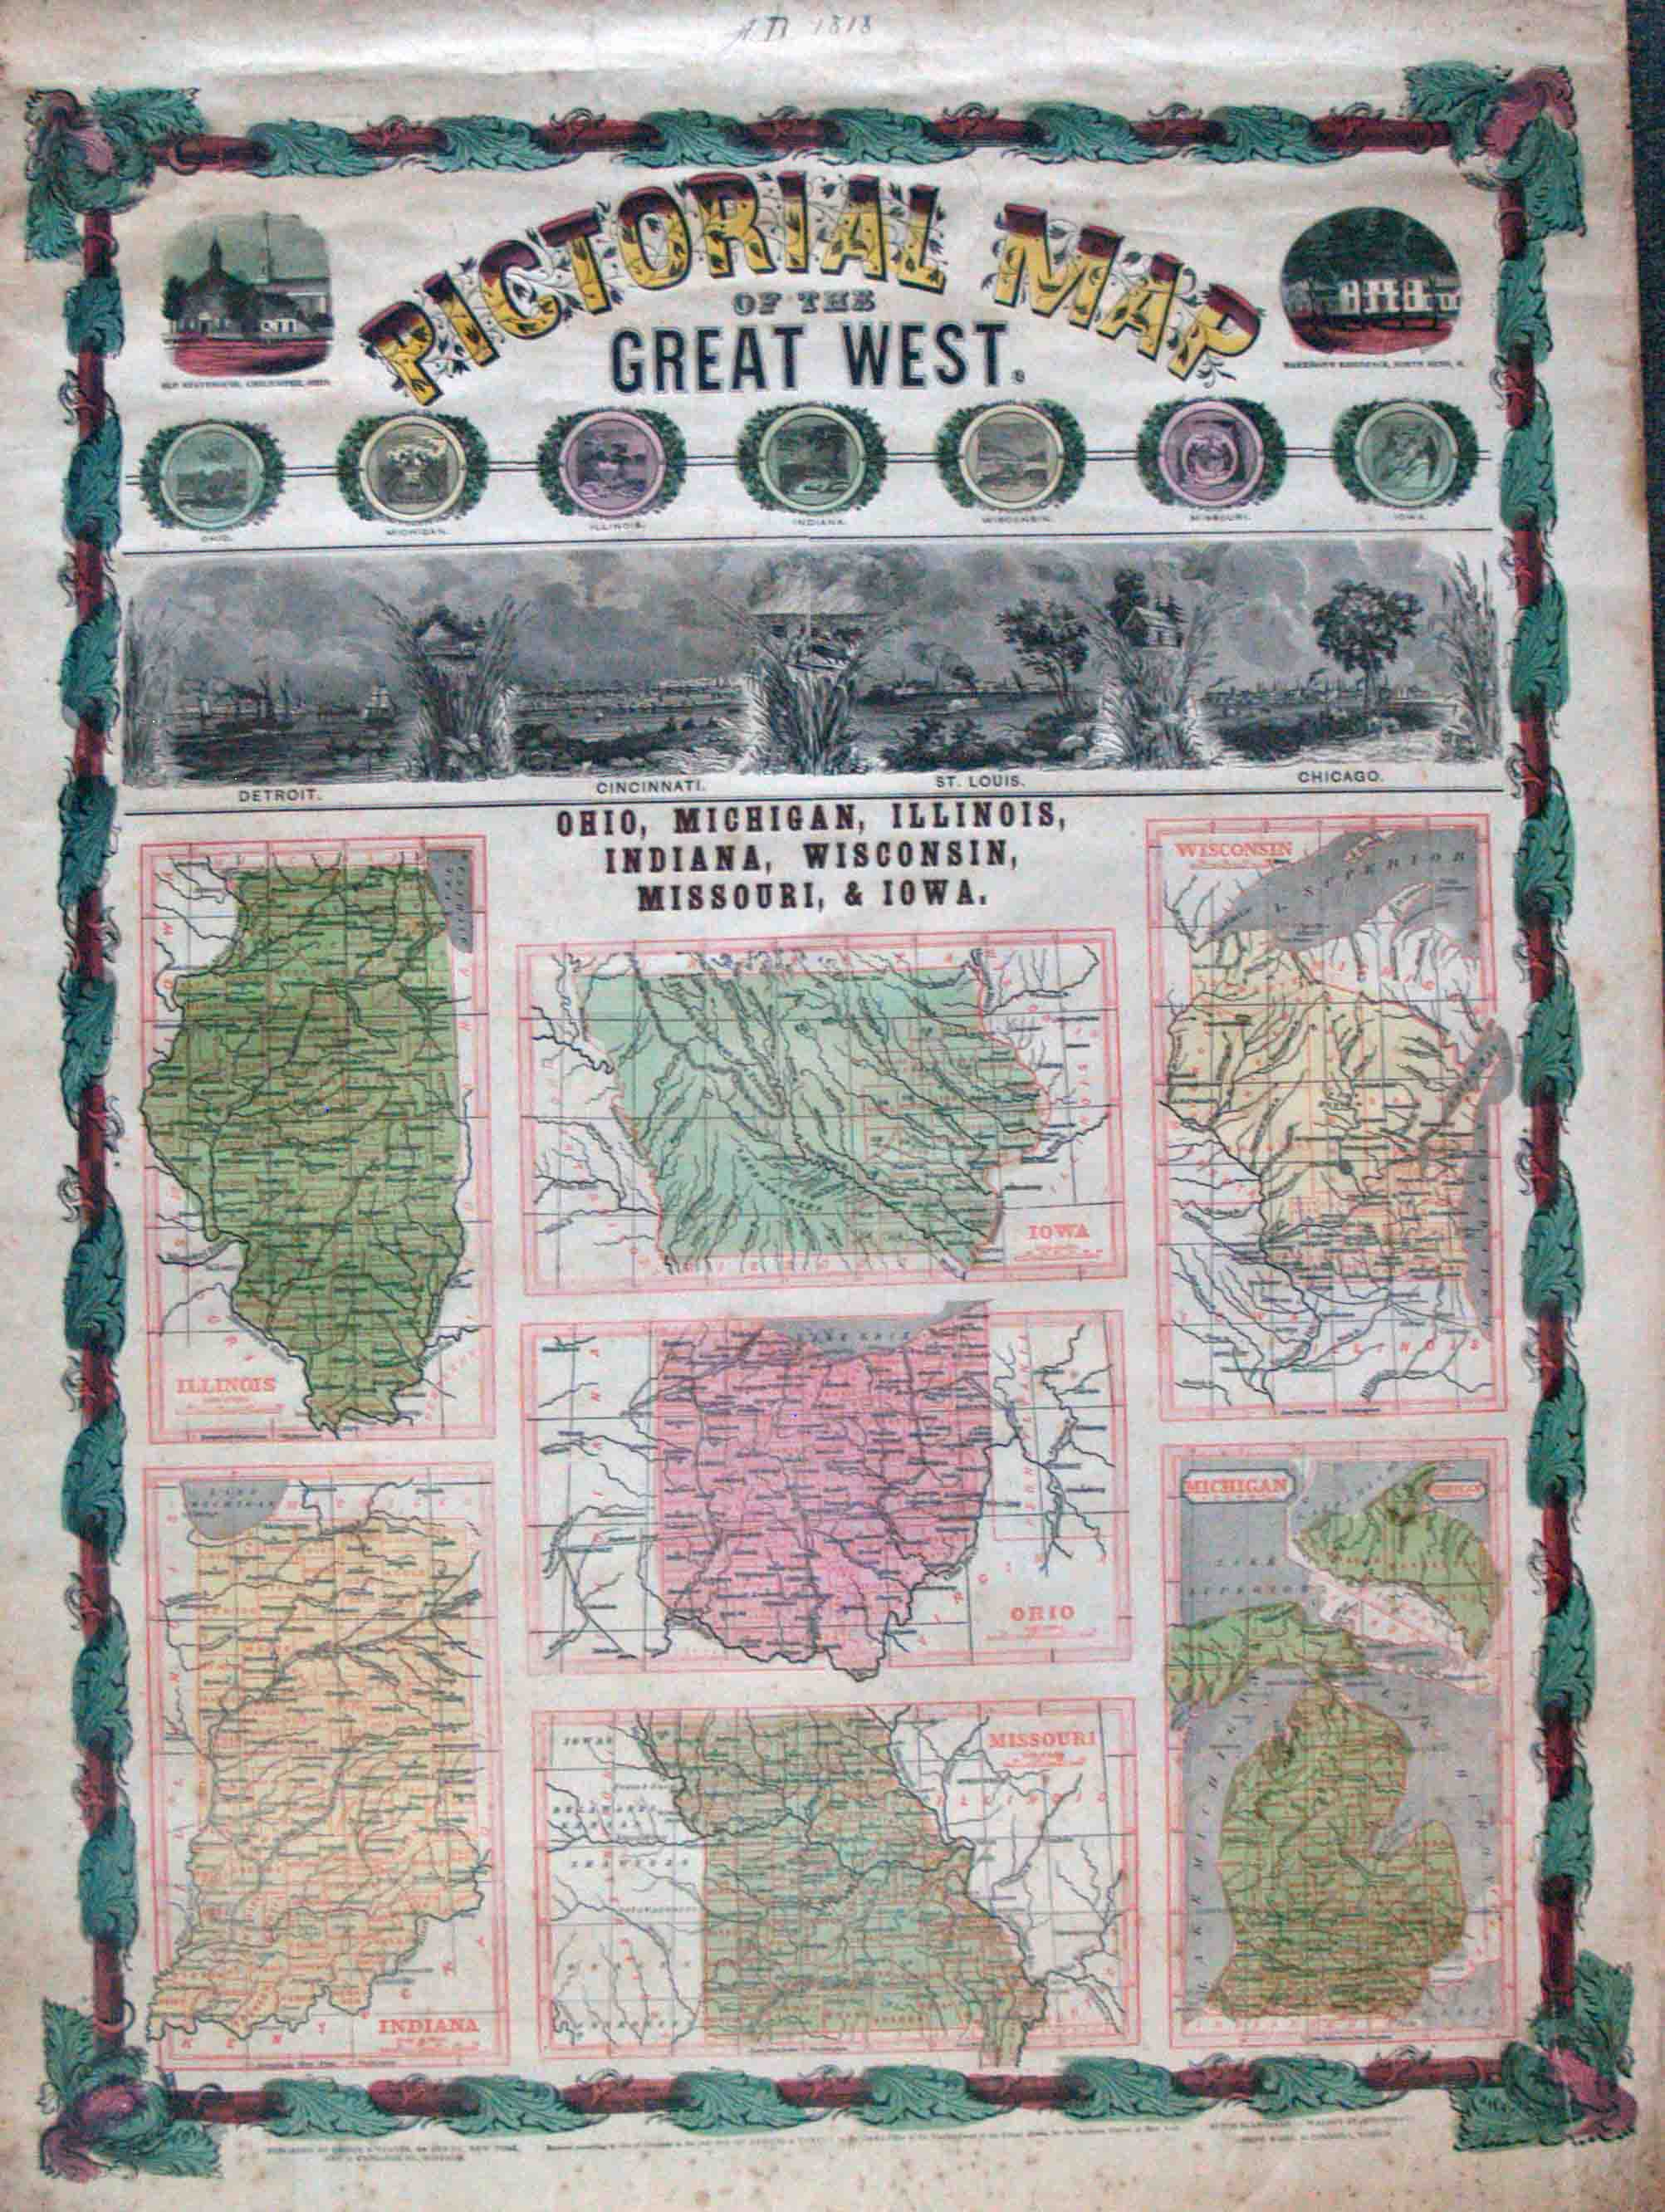 Pictorial Map of the Great West. Ohio, Michigan, Illinois ... on map of illinois cities, map of west virginia and tennessee, map of iowa freedom rock in the tour, map of iowa small towns, iowa state map illinois, map of bridges of madison county iowa, map of iowa online, map of quad cities and surrounding area, map of dubuque iowa, map of church camps in illinois, big map of illinois, map of iowa casinos, street map clinton illinois, map of quincy illinois, map of iowa print, map of missouri, map of the state of iowa, oakland city hall illinois, map of minnesota iowa border, map of iowa counties,